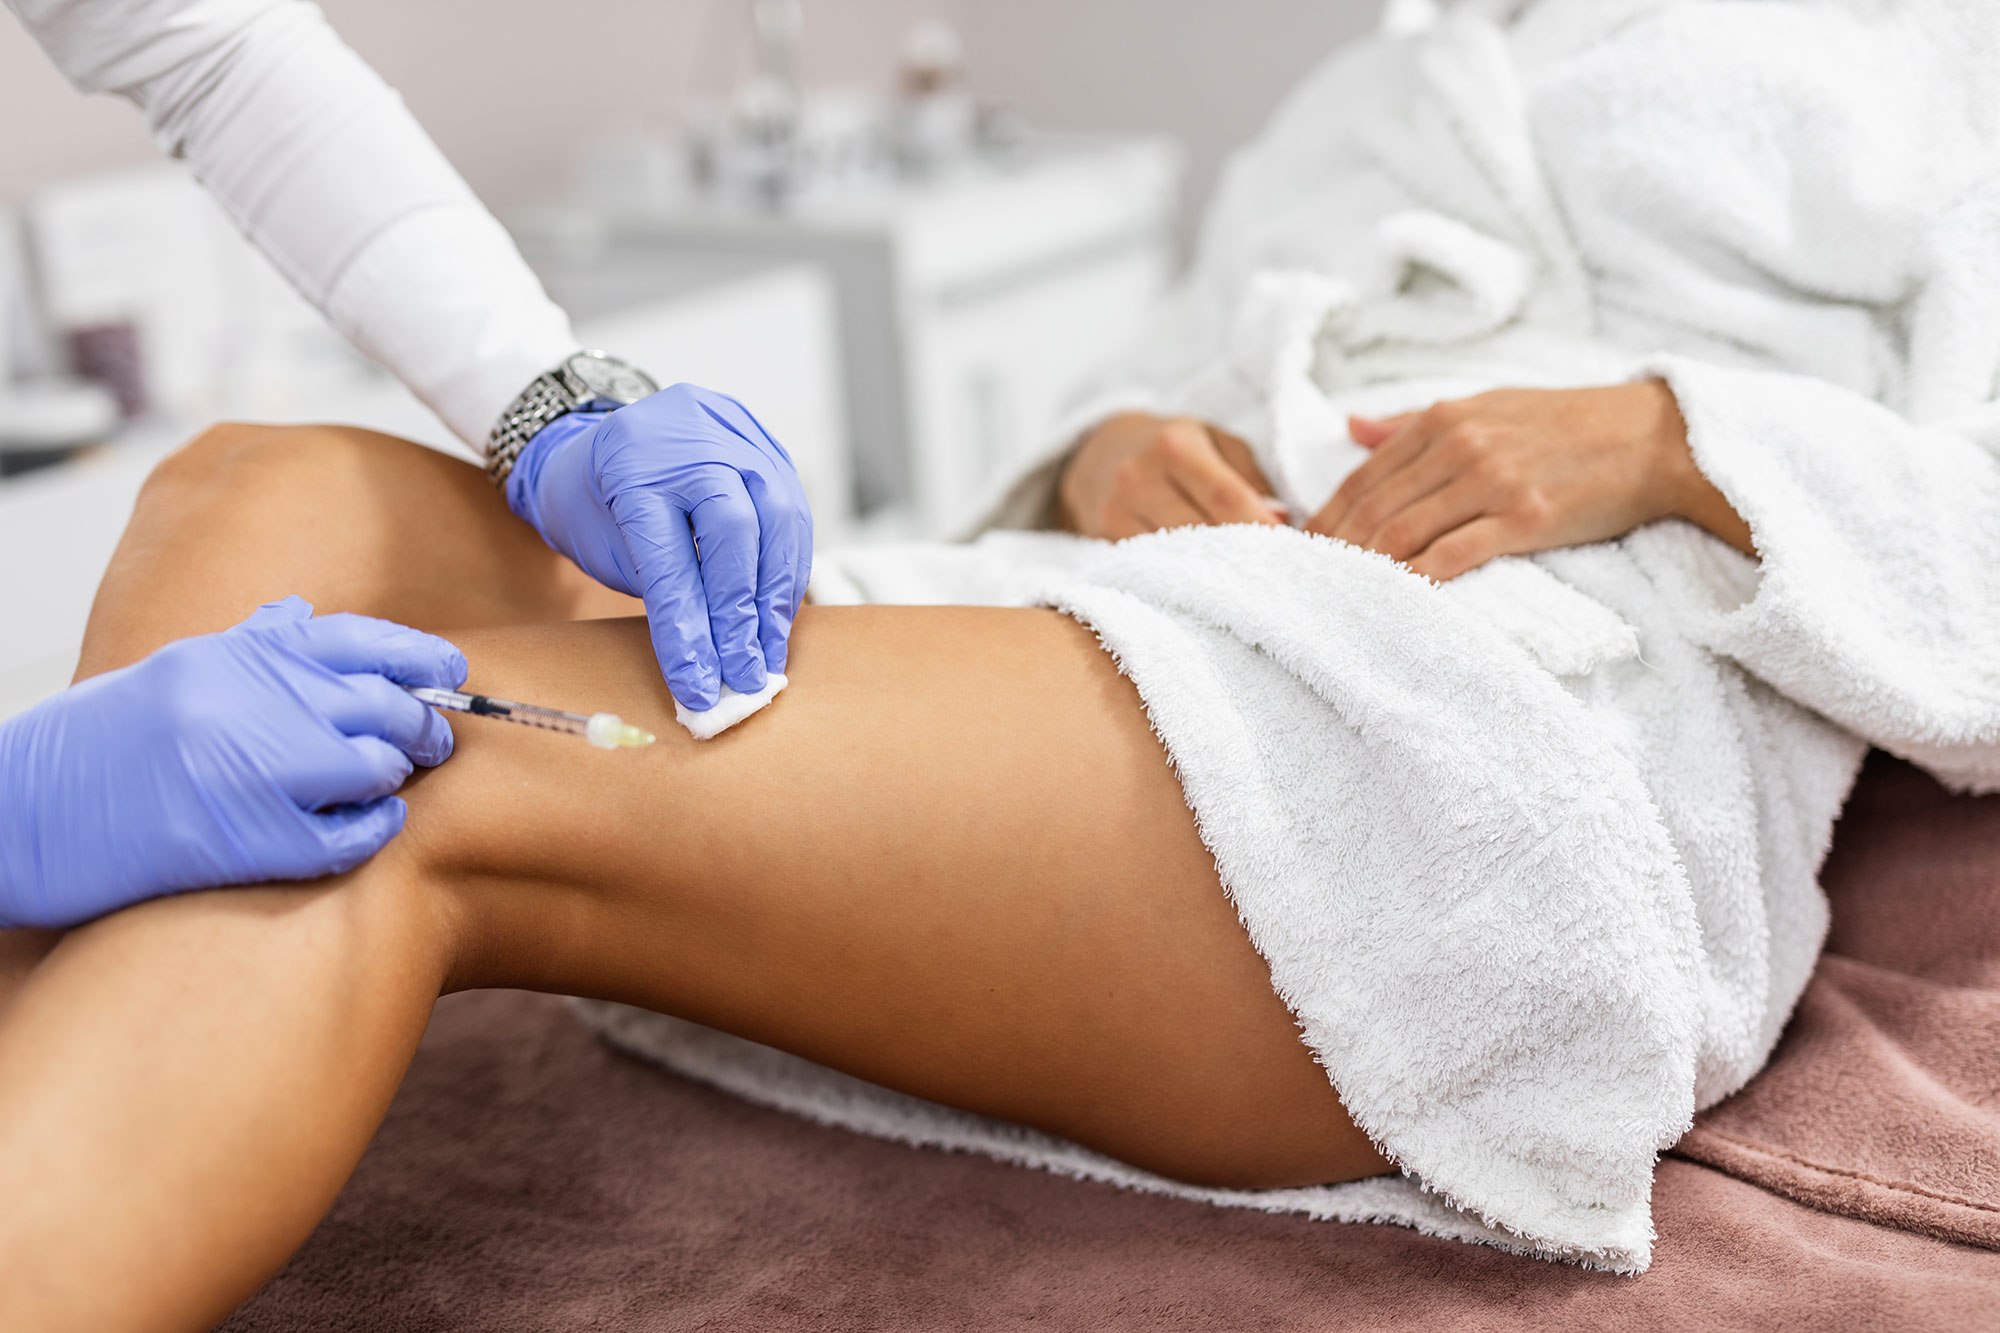 After Care Instructions for Sclerotherapy